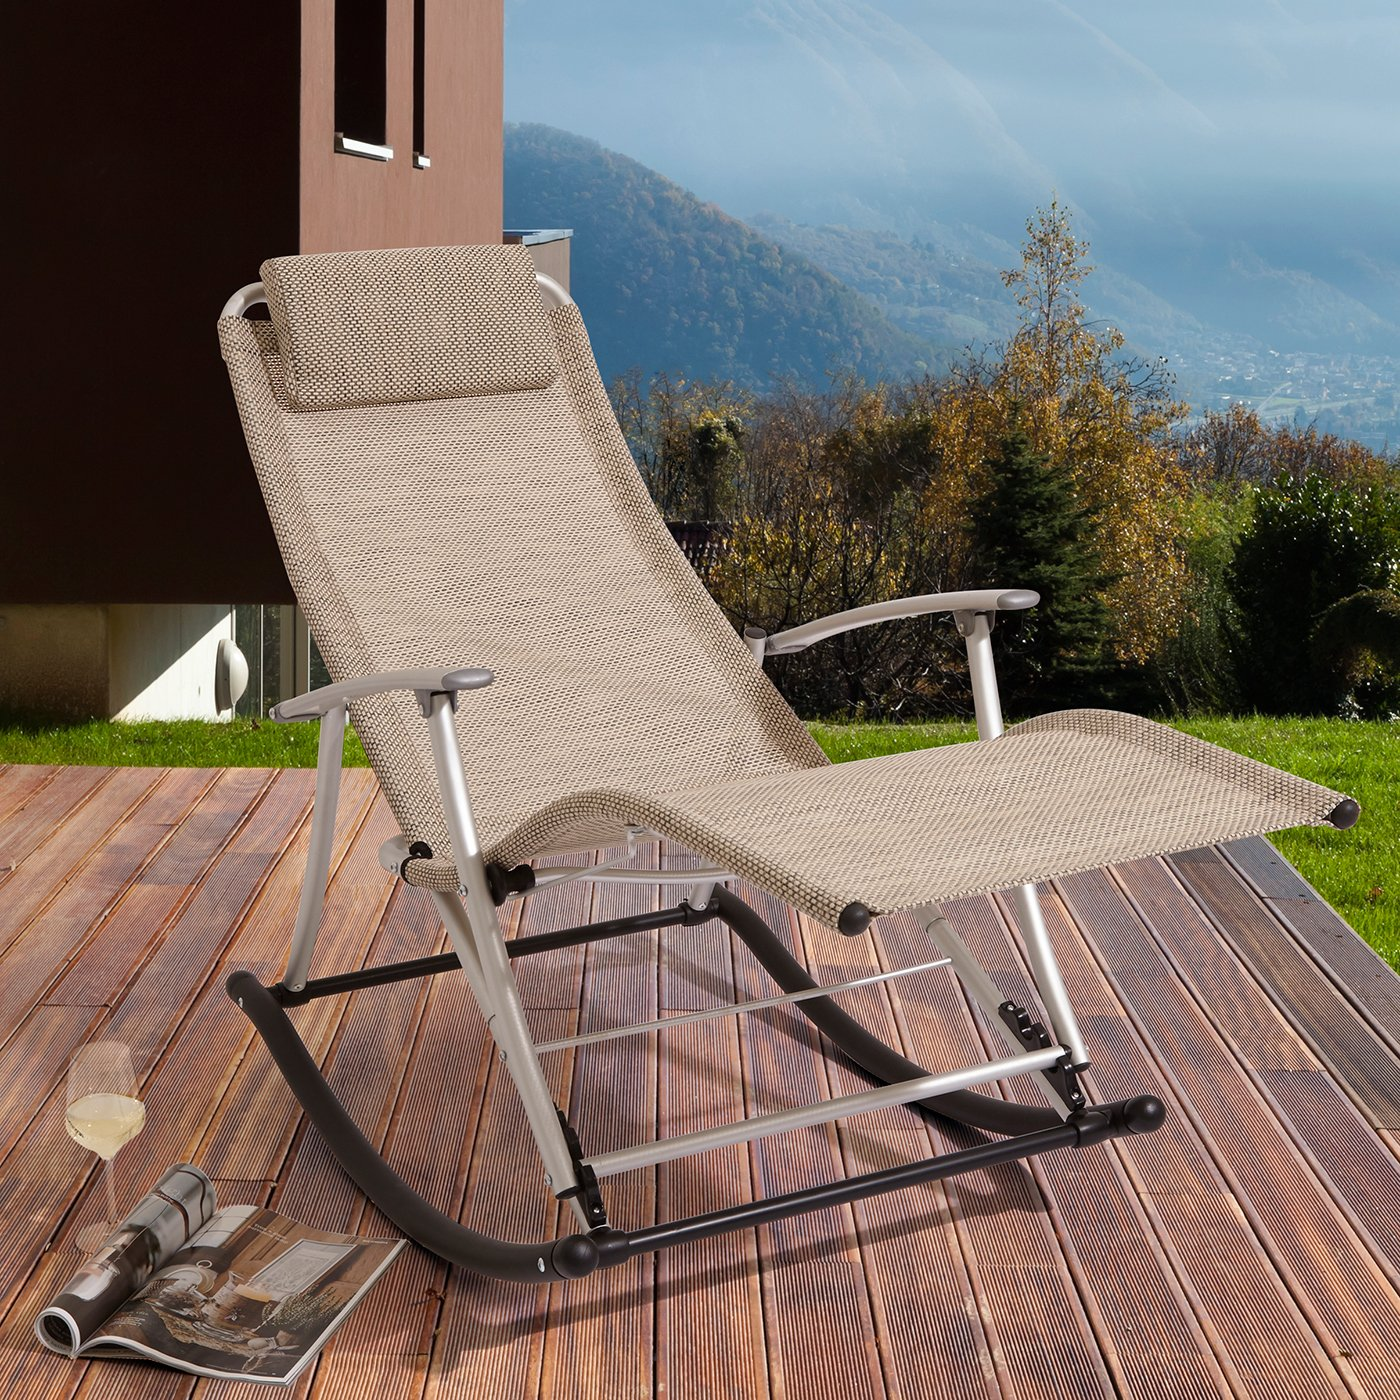 Trueshopping Leisure Chair Toblino Garden Patio Foldable Light Alu